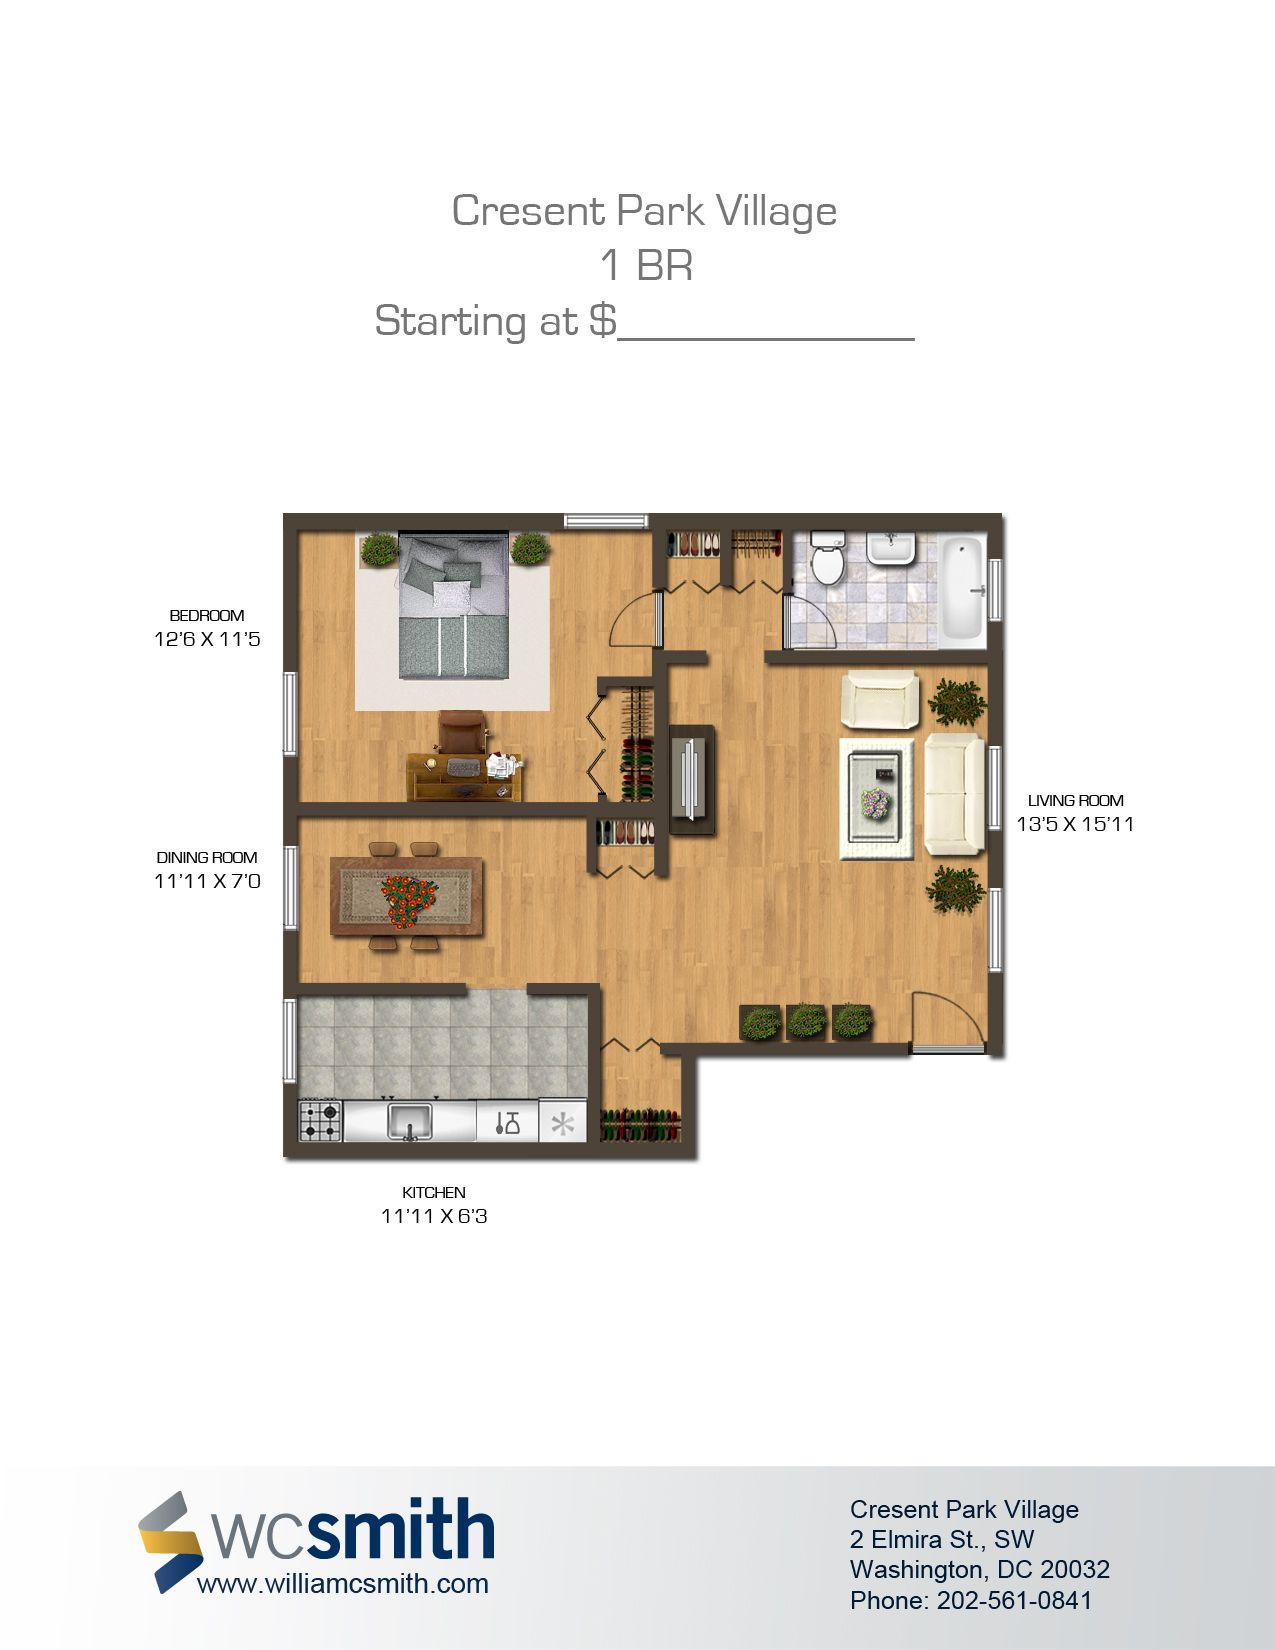 Pin By Wc Smith On Crescent Park Village Small House Plans House Floor Plans House Plans